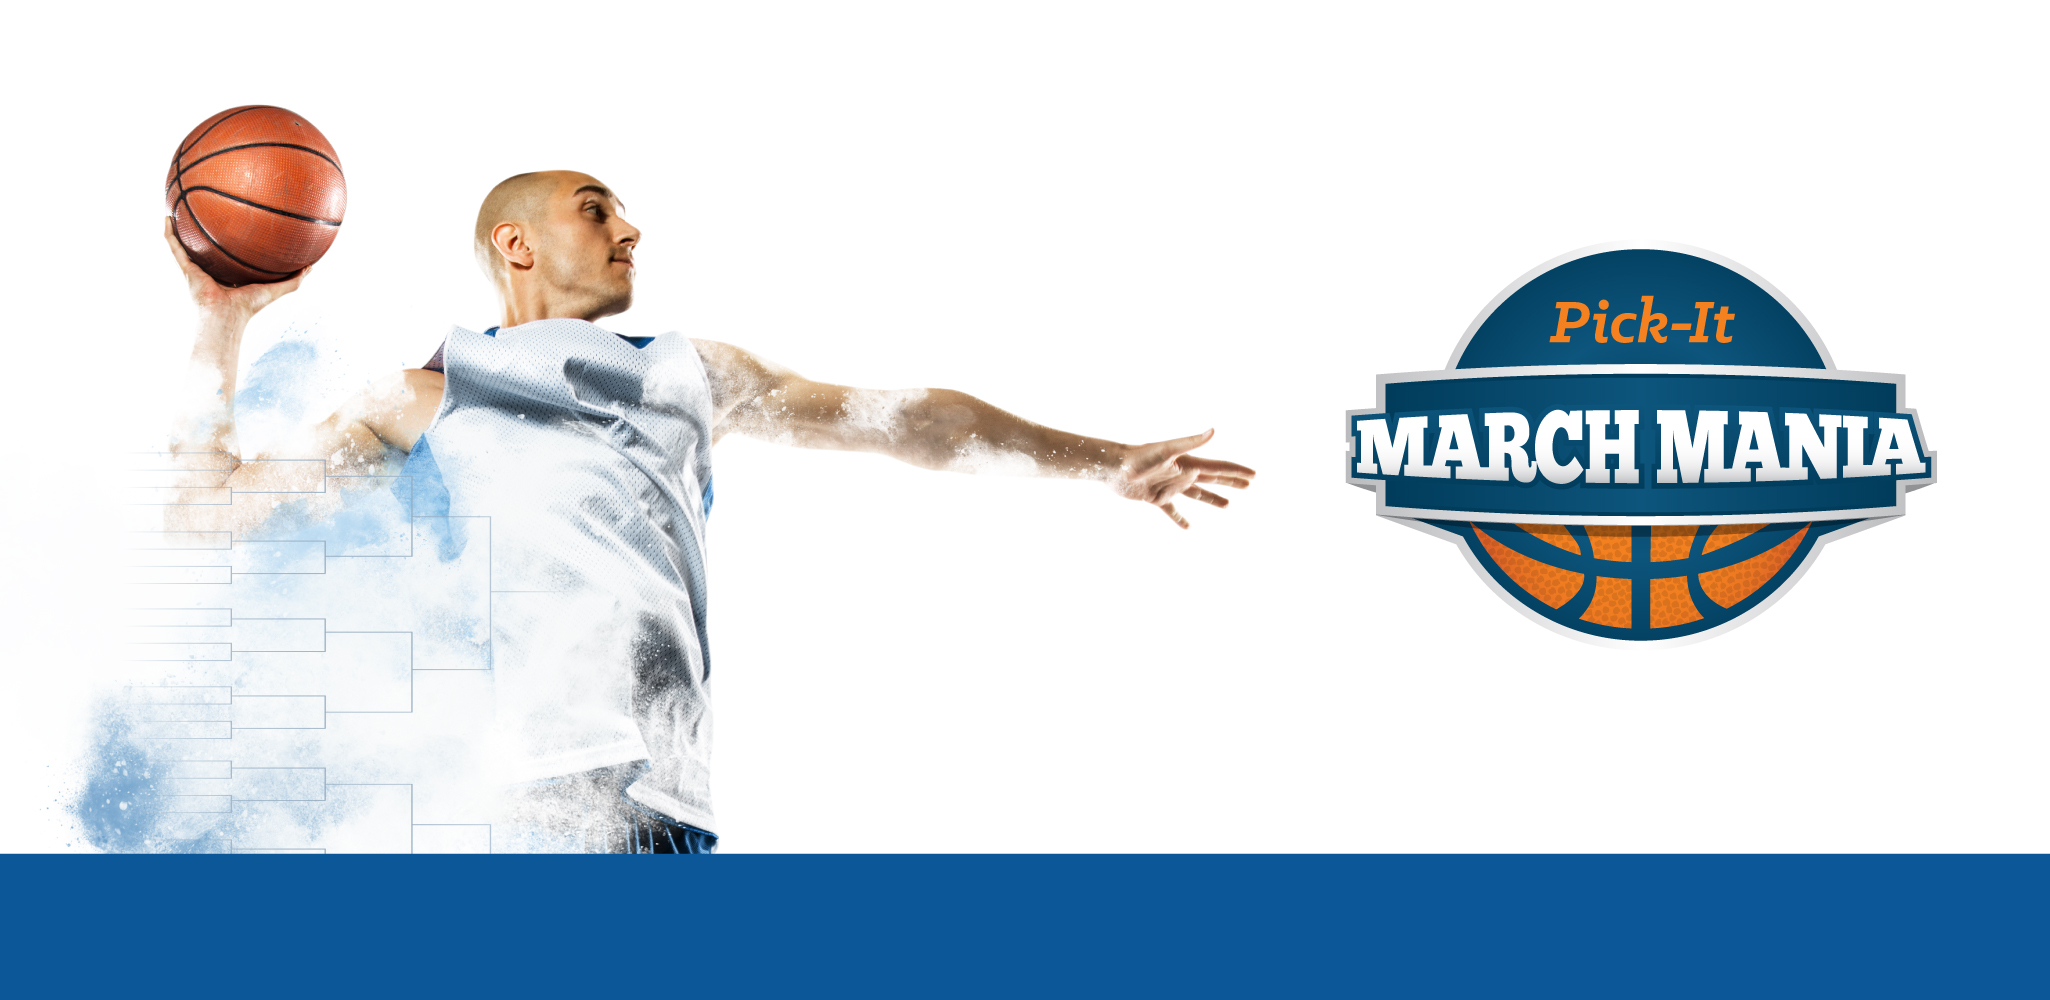 Play Alpine's March Mania Basketball Contest